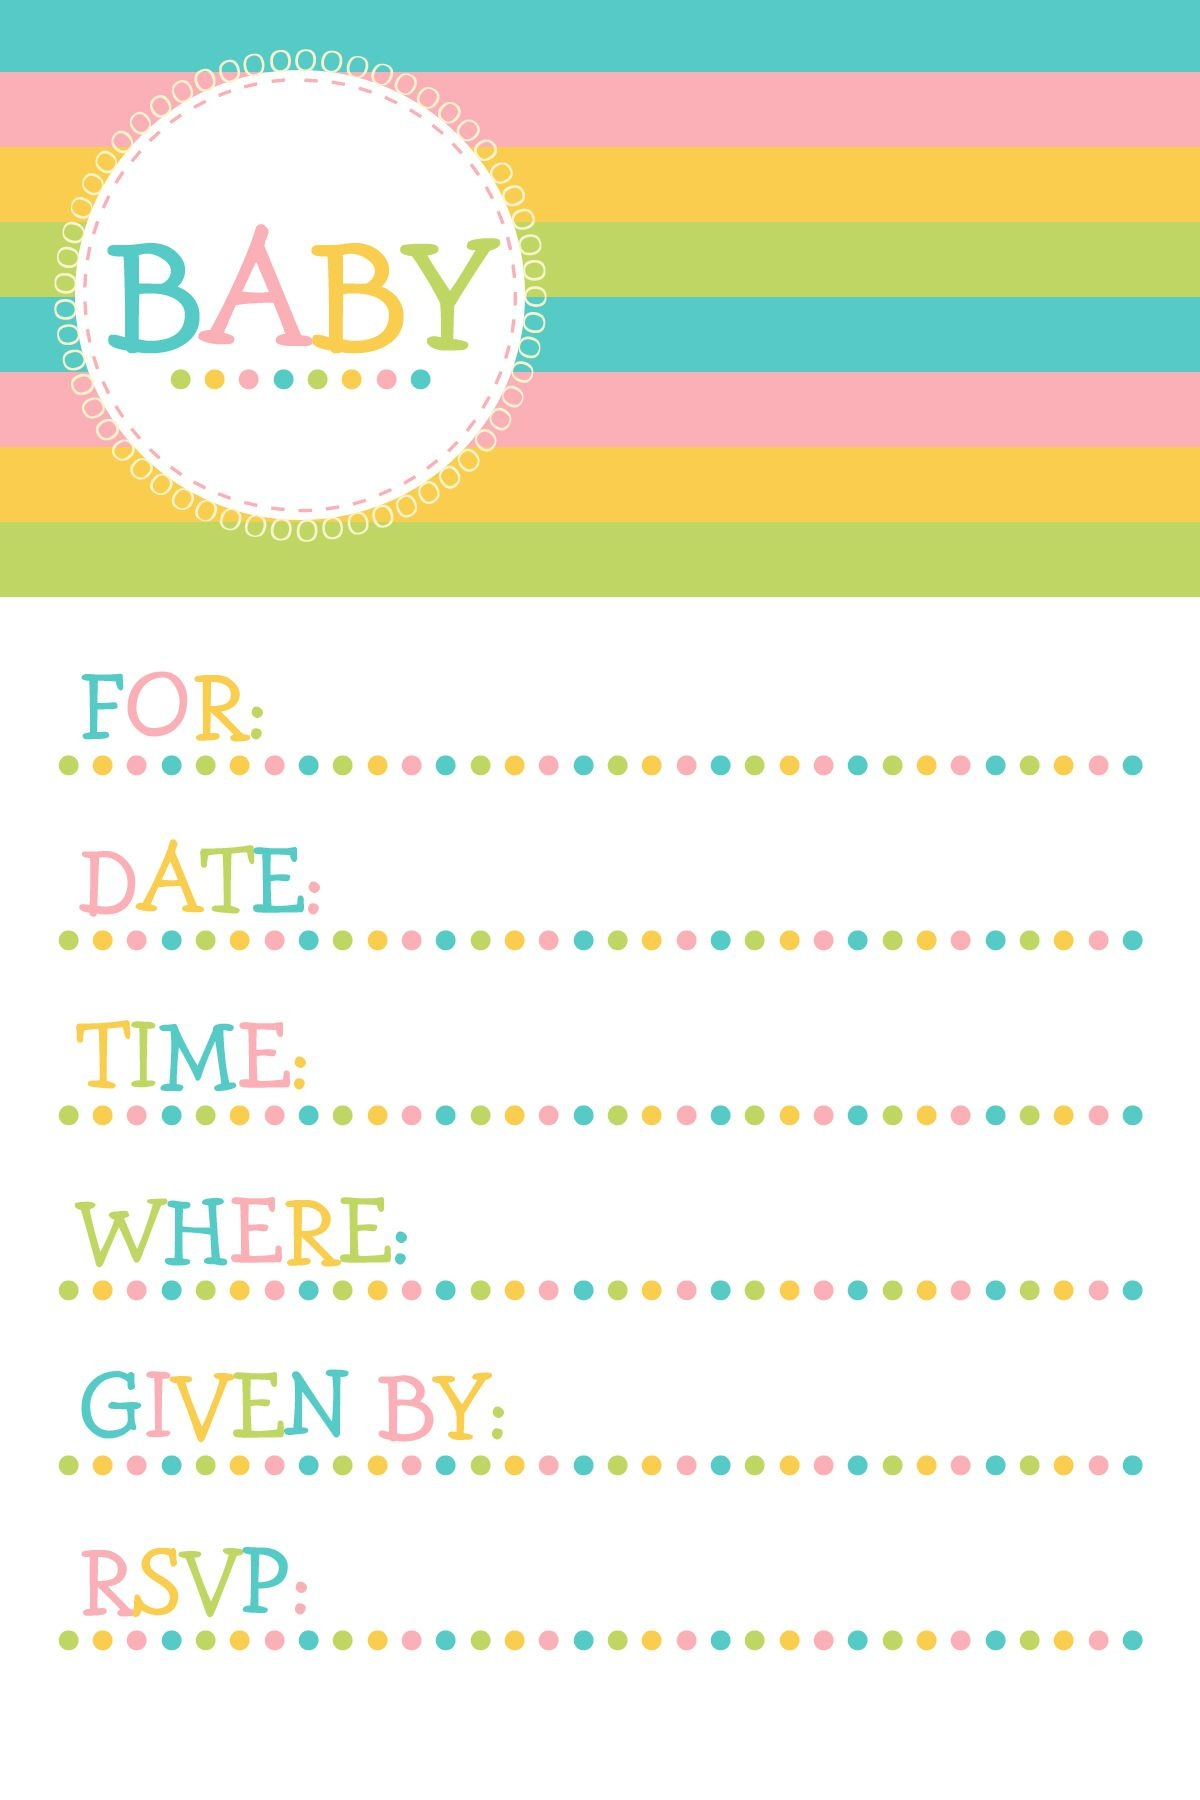 25 Adorable Free Printable Baby Shower Invitations - Free Printable Baby Shower Invitations